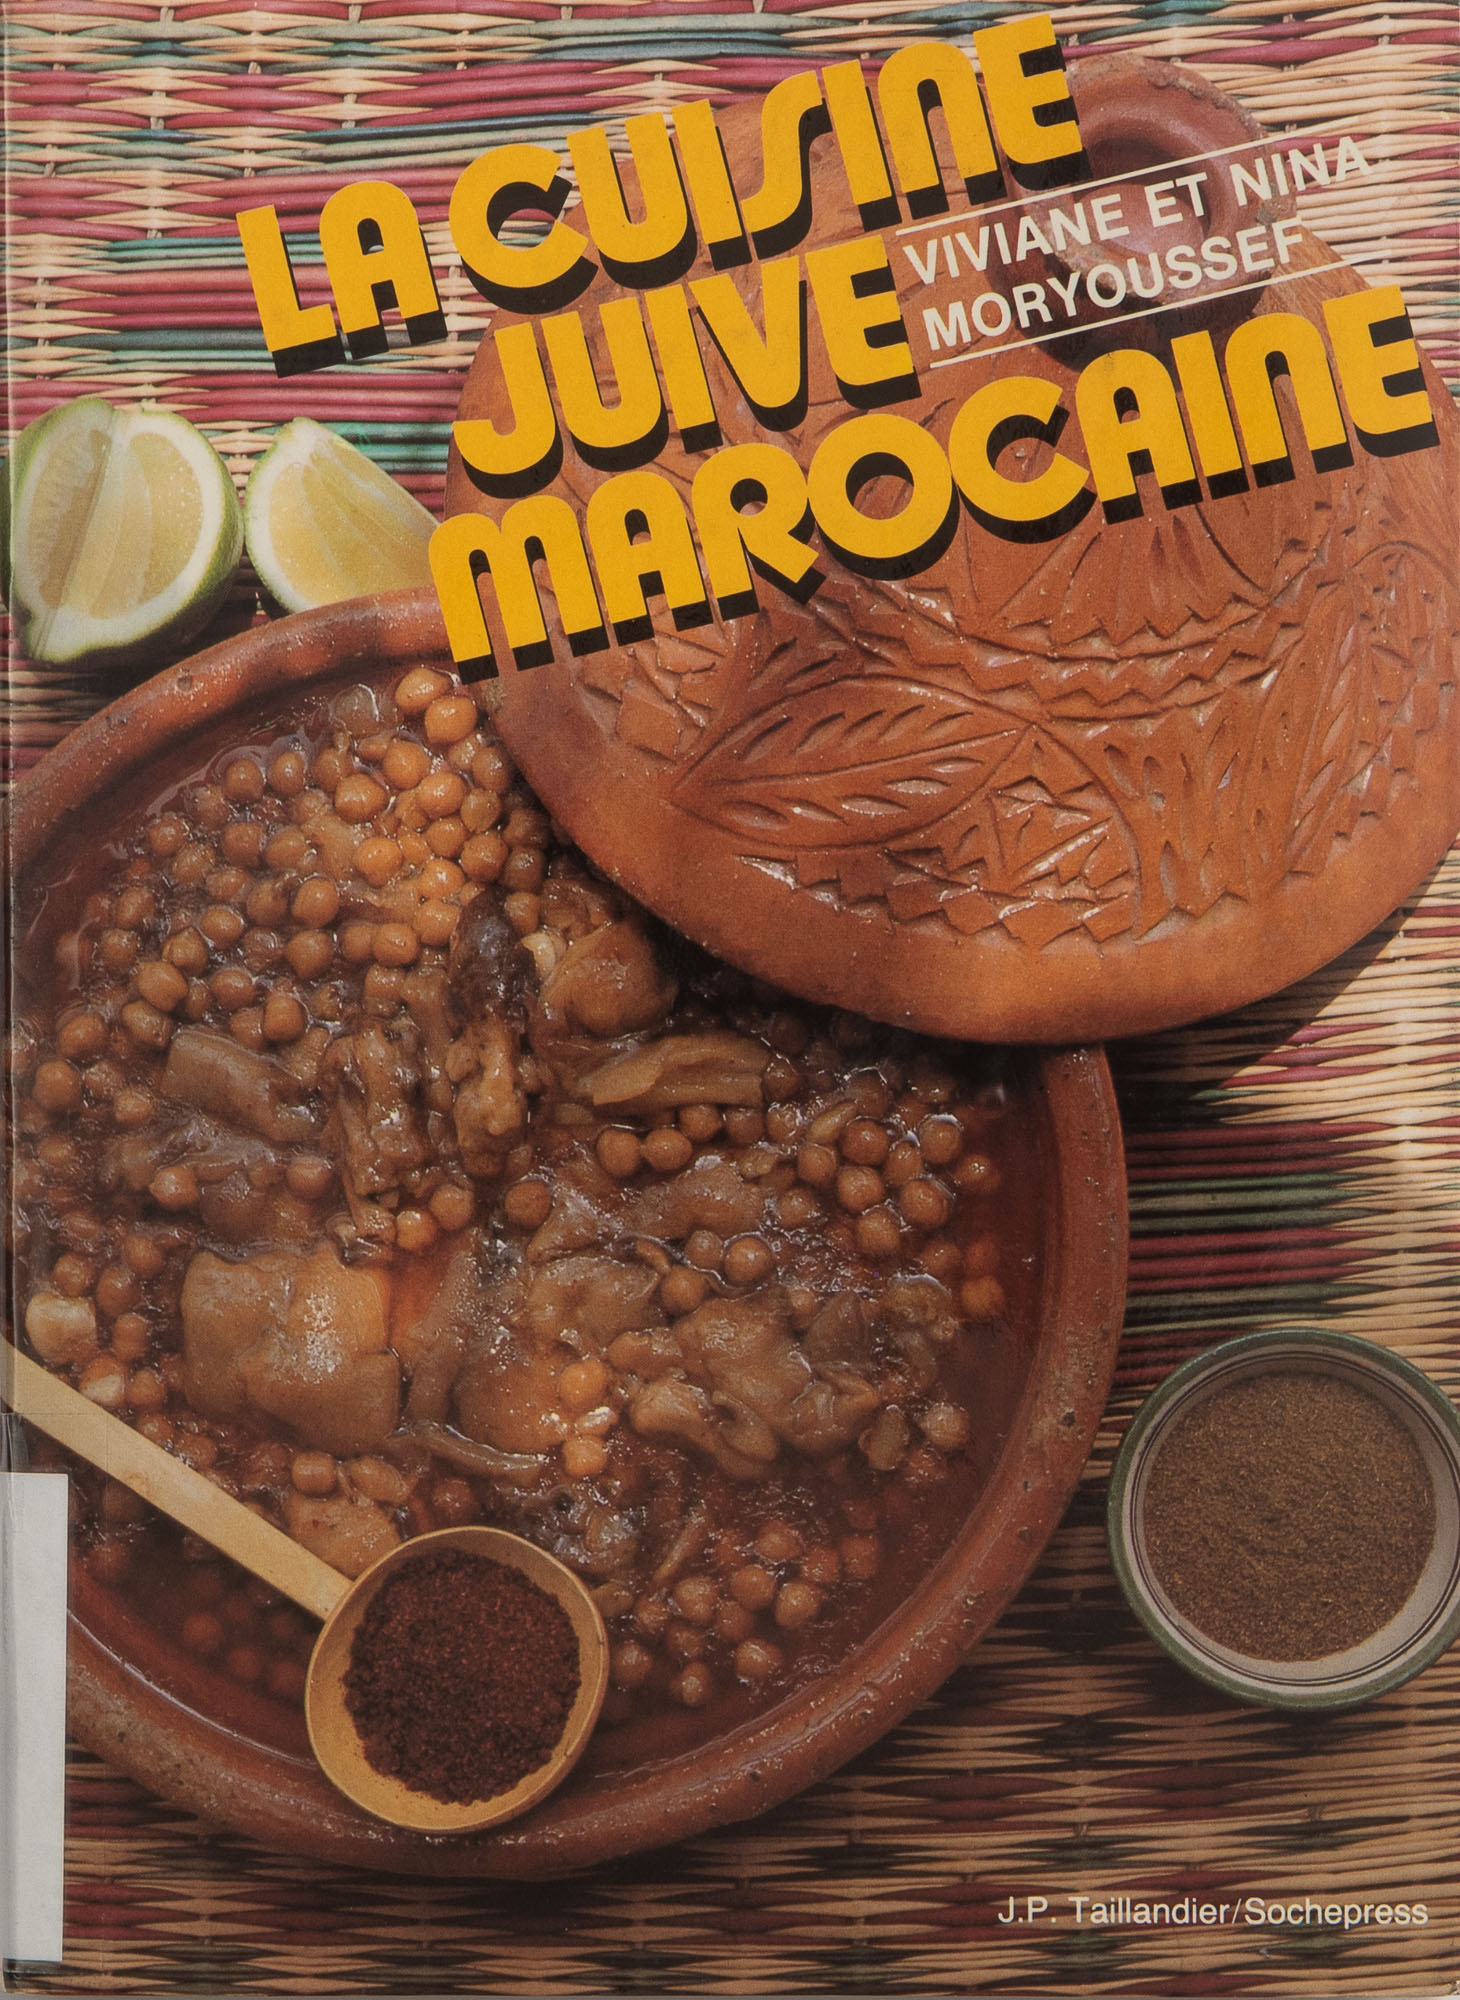 The cover of La Cuisine Juive Marocaine, a French-language cookbook about Jewish Moroccan food Cuisine Juive MarocaineLa Cuisine Juive Marocaine